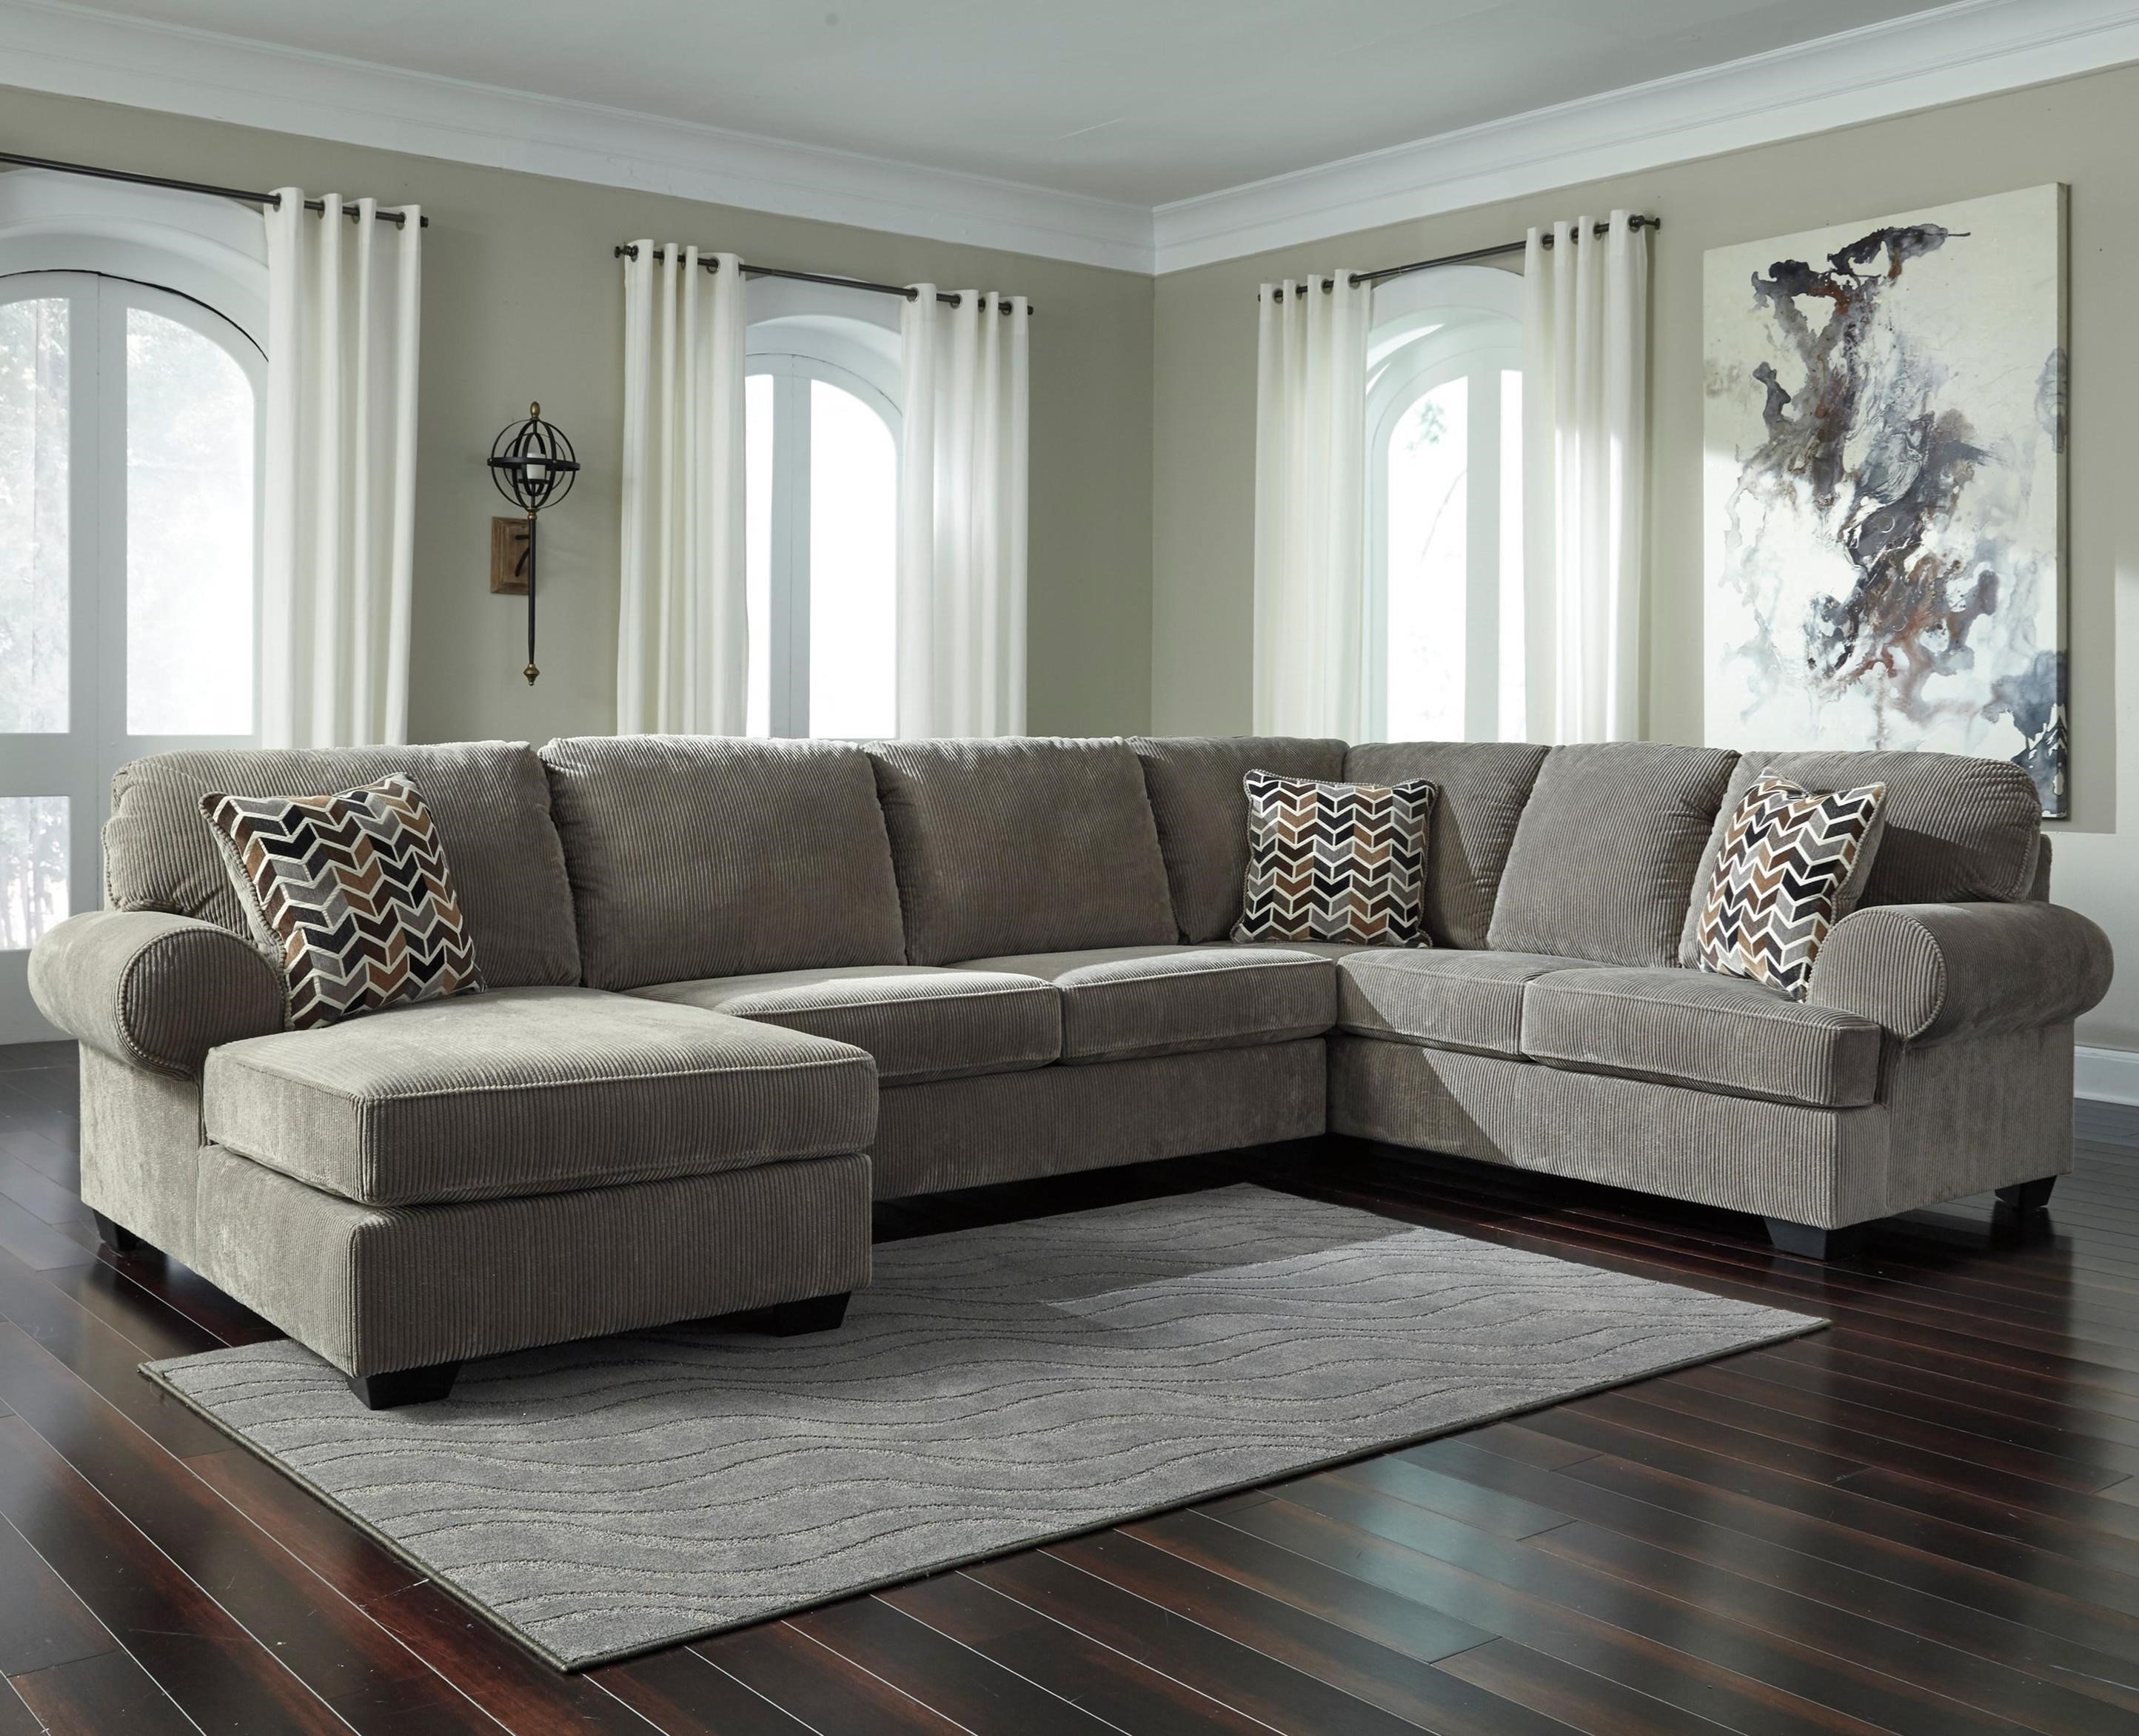 jinllingsly contemporary 3 piece sectional with left chaise in corduroy fabric by signature design by ashley at westrich furniture appliances